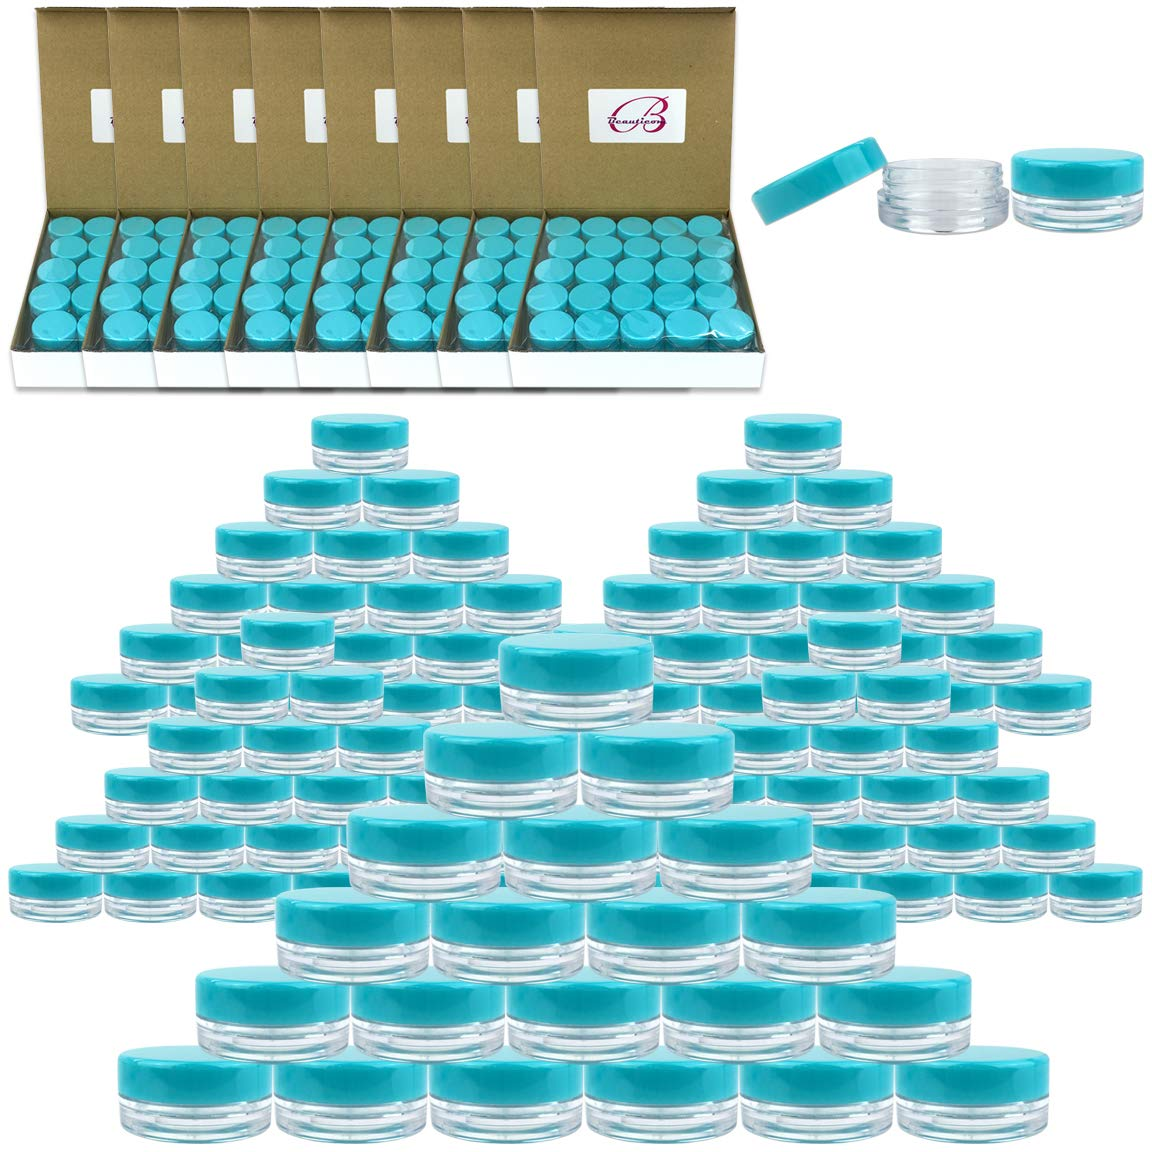 (Quantity: 1000 Pieces) Beauticom 3G/3ML Round Clear Jars with TEAL Sky Blue Lids for Scrubs, Oils, Toner, Salves, Creams, Lotions, Makeup Samples, Lip Balms - BPA Free by Beauticom